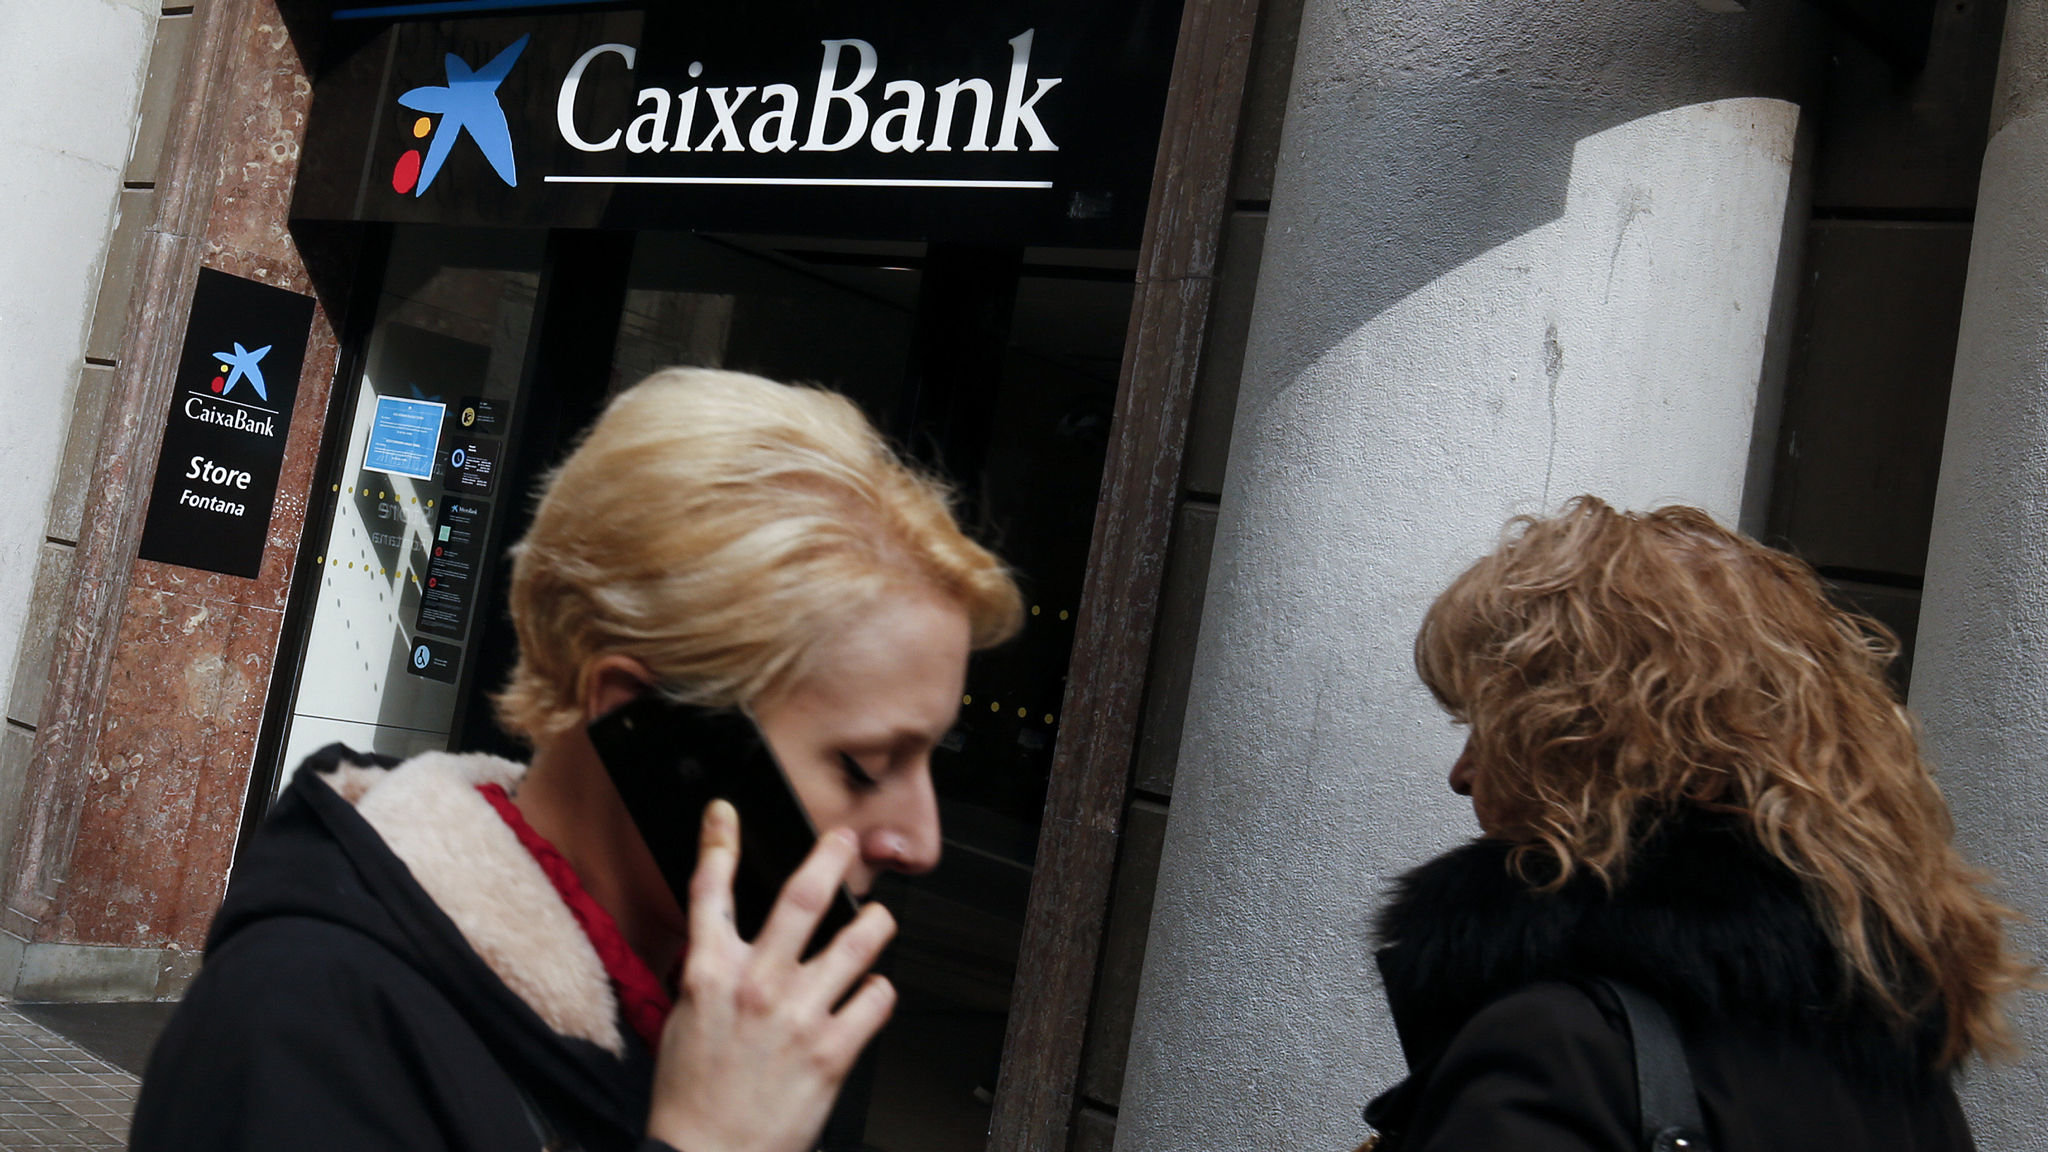 CaixaBank rolls out ATM face recognition | Financial Times